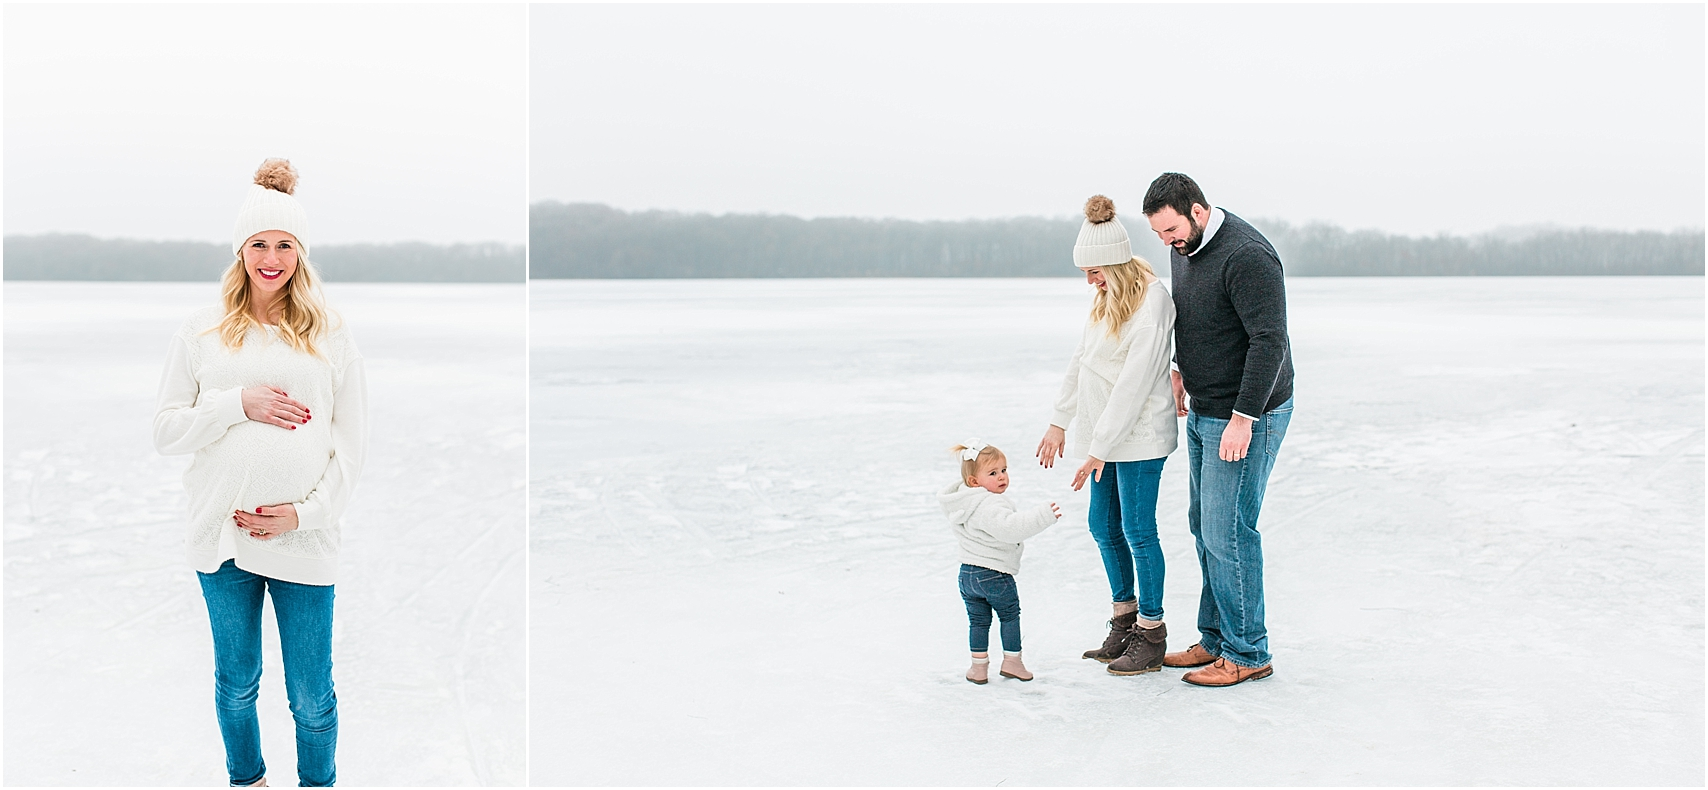 Minnesota winter maternity session Lake Ann Park Chanhassen photographed by Mallory Kiesow, Minnesota maternity photographer_003.jpg